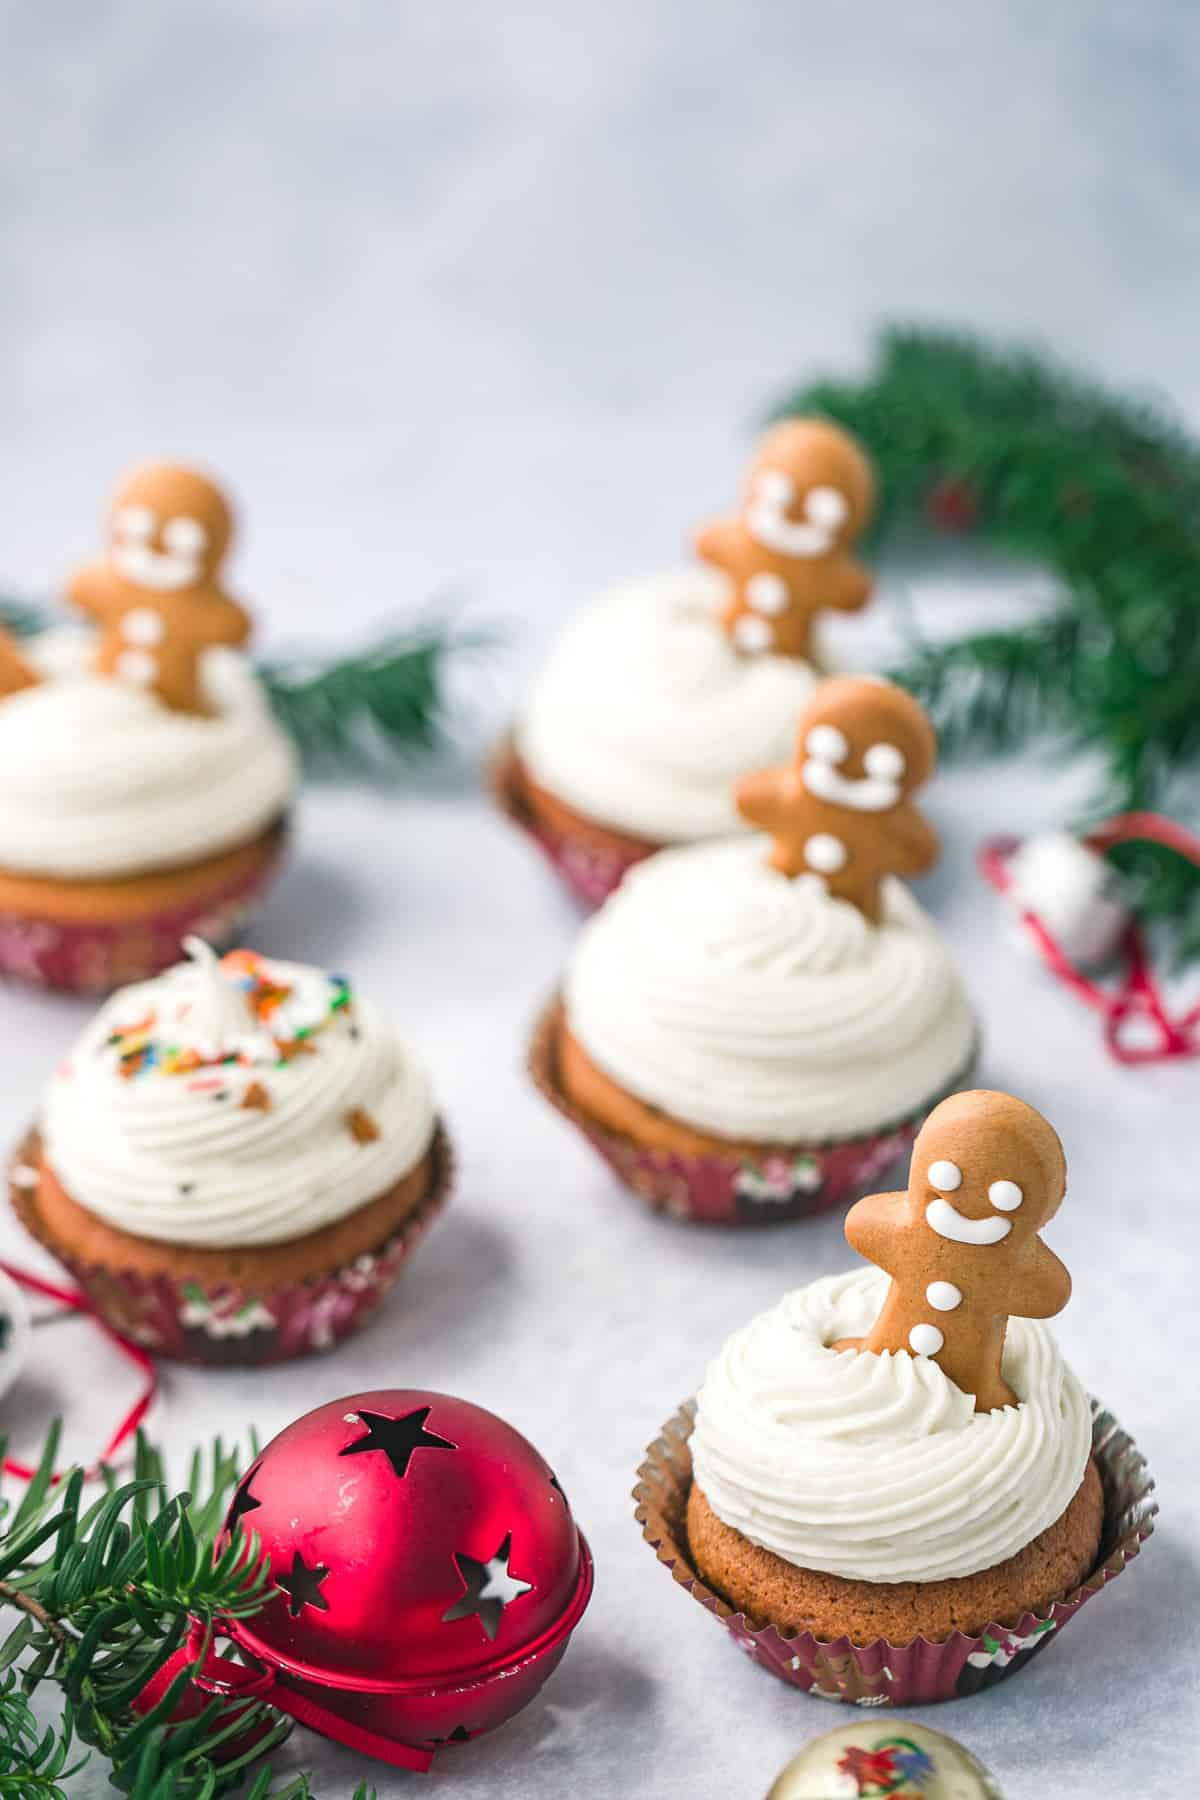 5 gingerbread cupcakes topped with cream cheese frosting and a mini gingerbread man.